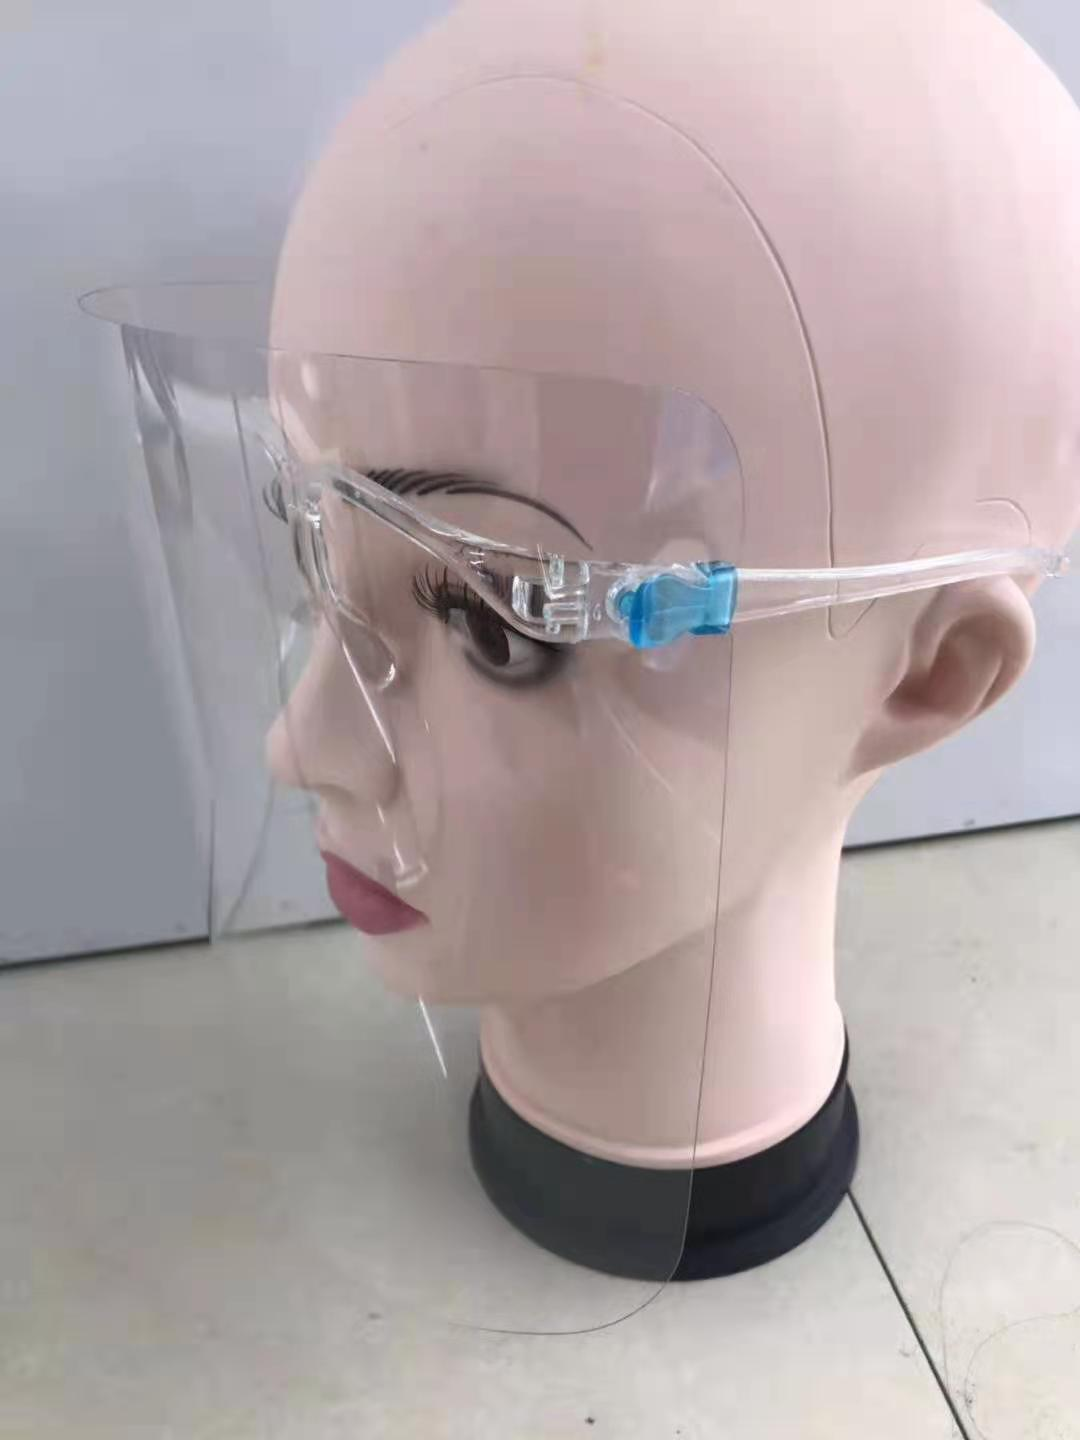 face shield with goggle from Shantou Shenghuang plastic products Co. Ltd